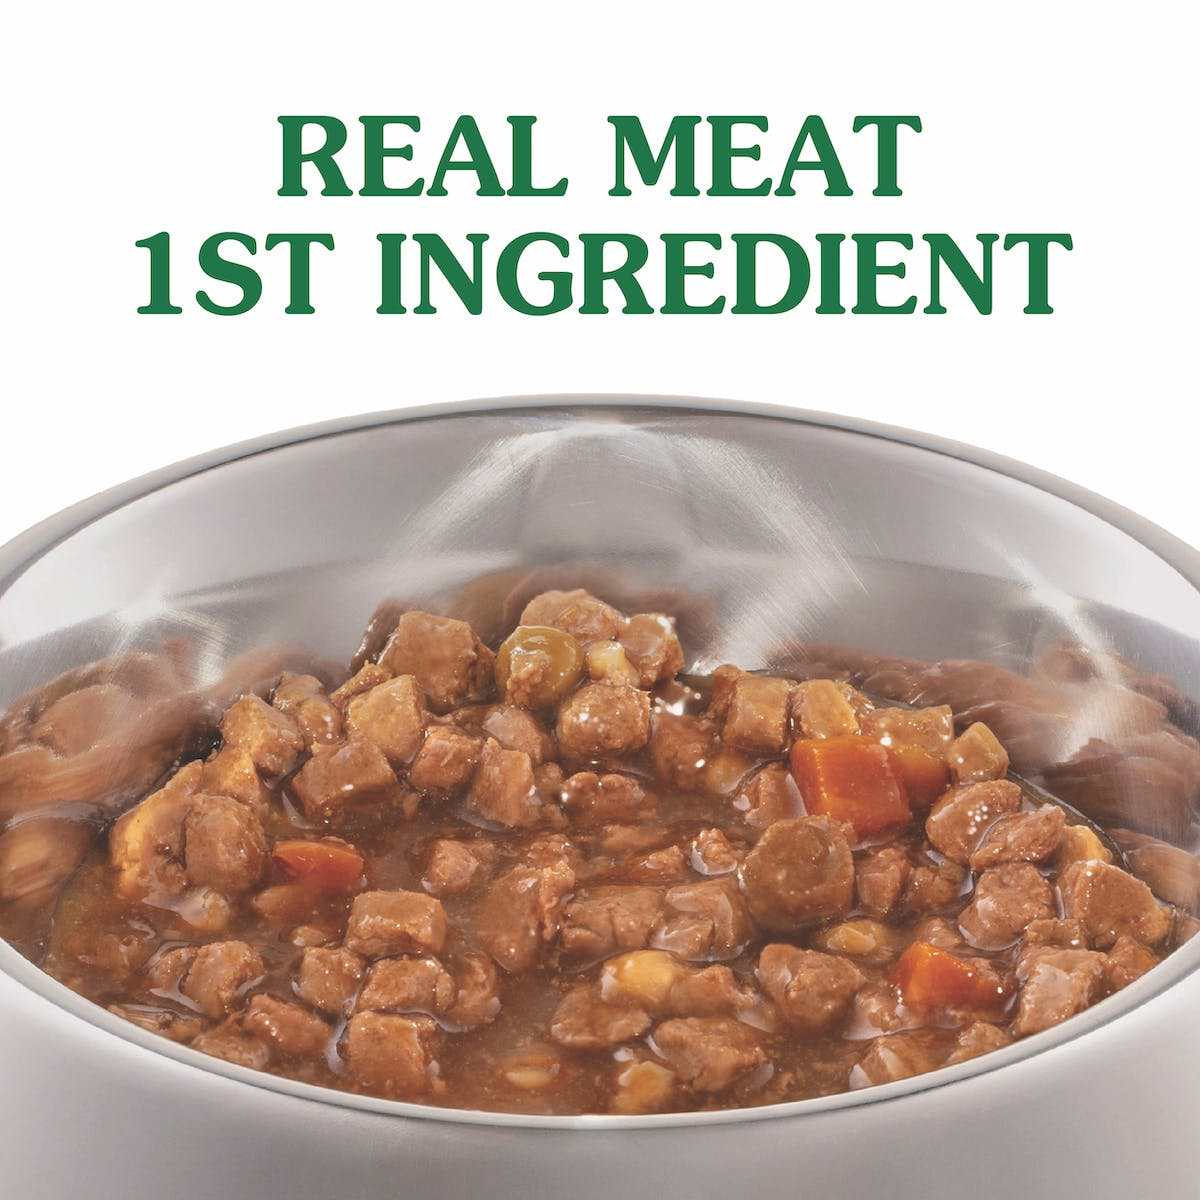 Nature's Gift | Chicken, rice & vegetables | Wet dog food | Left of pack